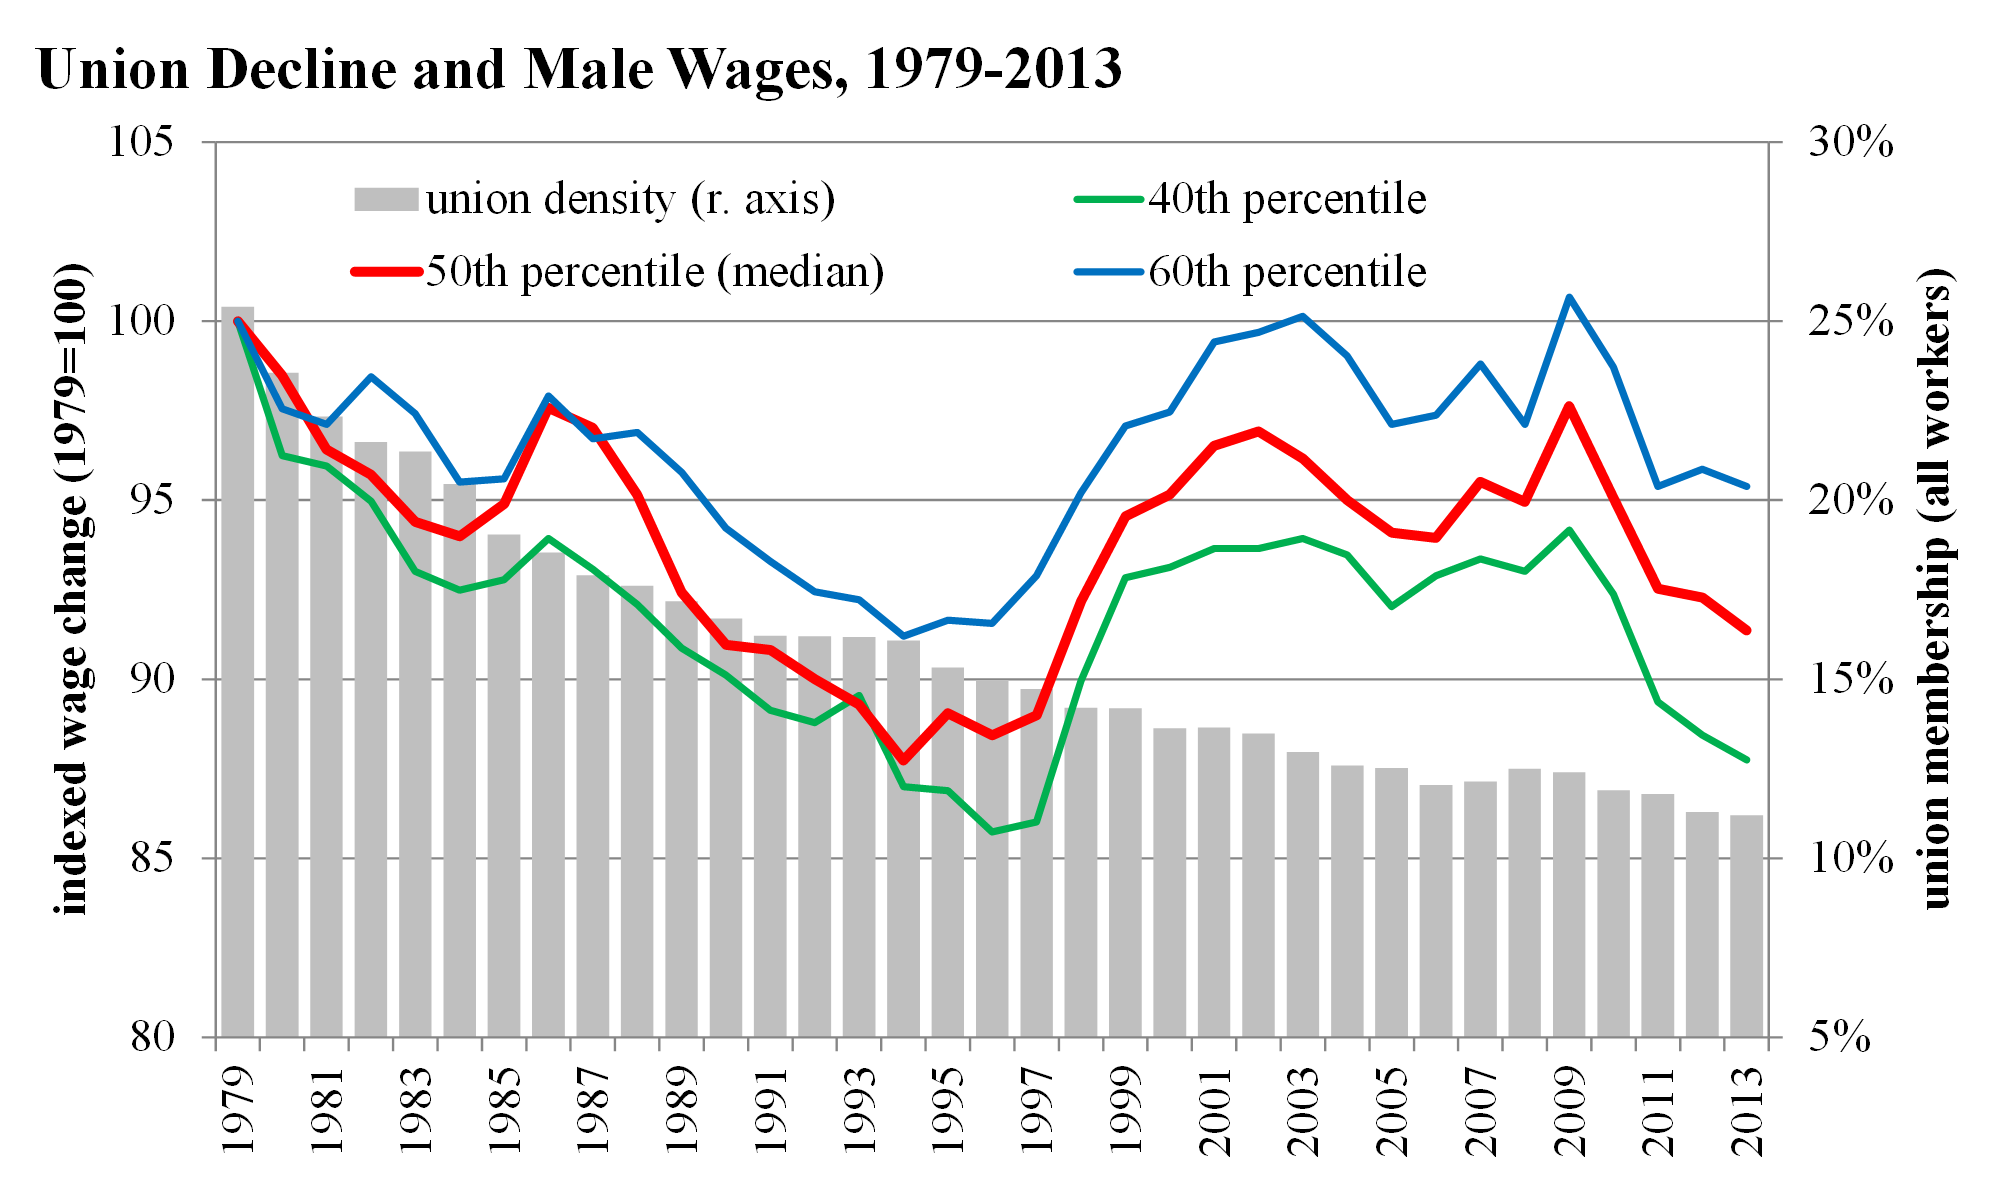 Union Decline and Male Wages 1979-2013